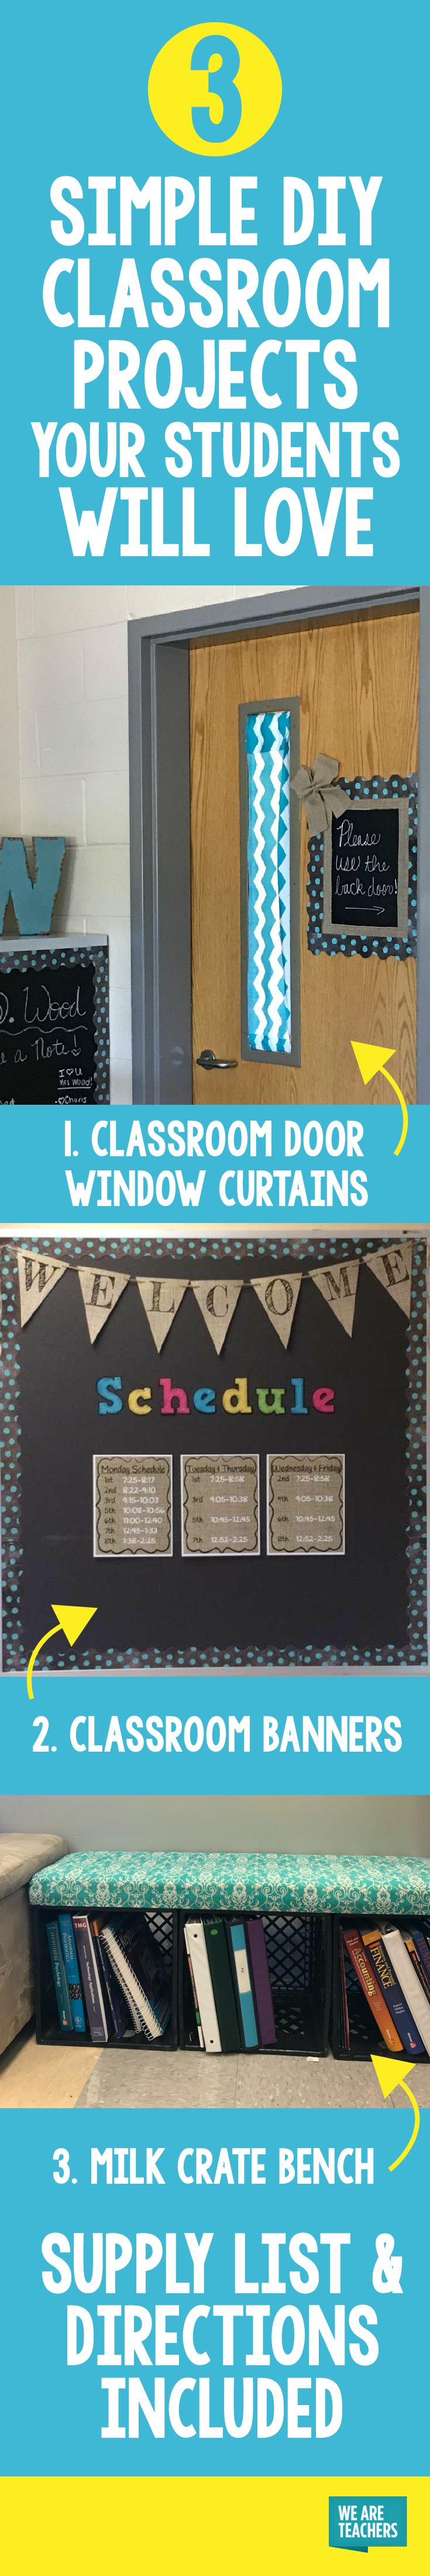 You'll love these simple DIY classroom projects. All you need is a few materials, and a can-do spirit. No sewing involved!